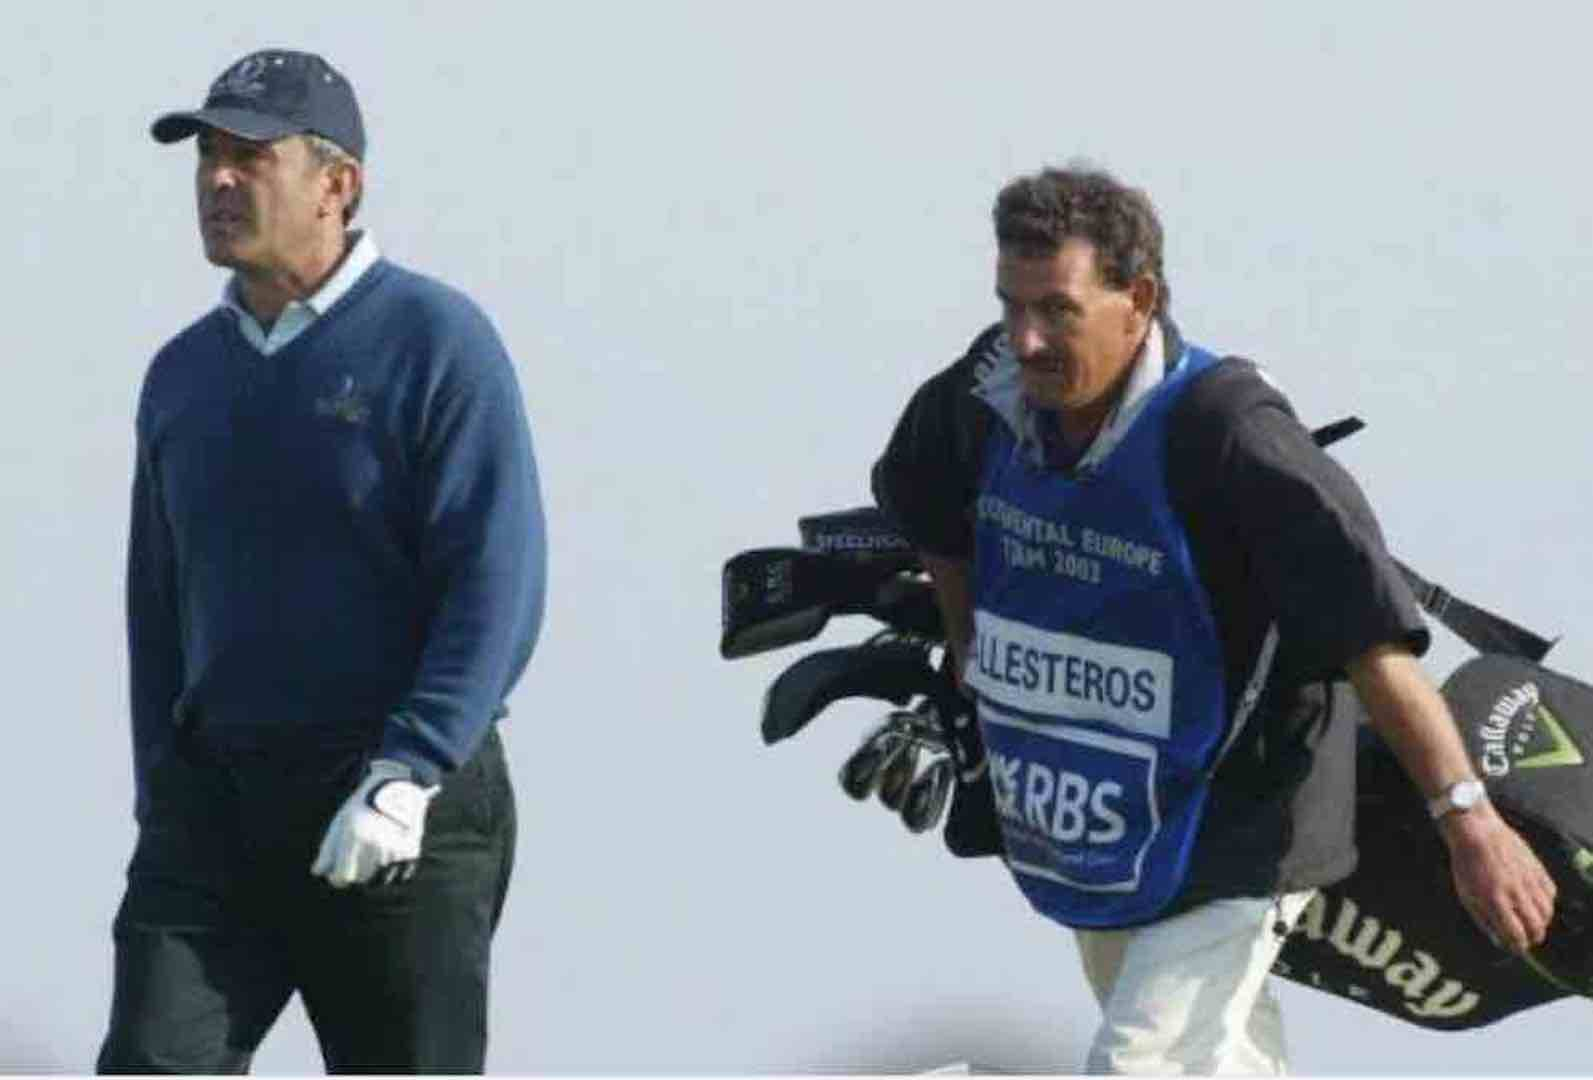 Golfers offered Tour Caddy experience